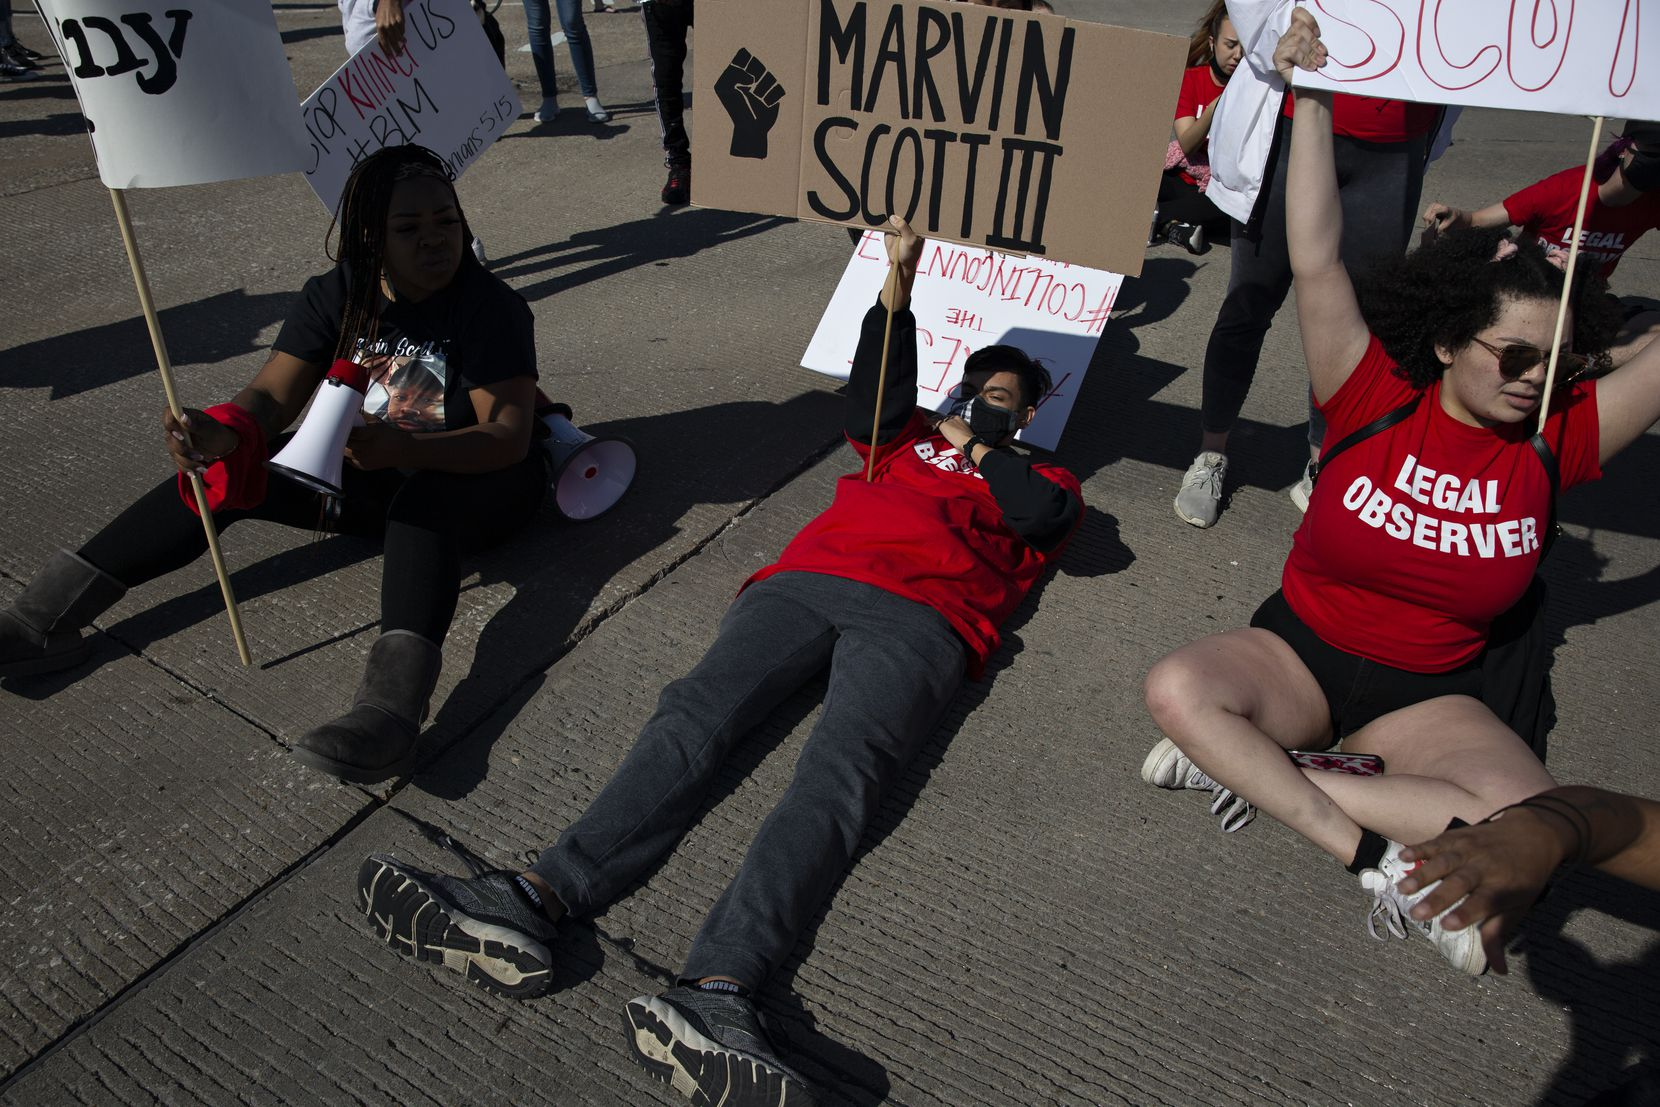 Michael Chyobotov (center) lays on the street as he occupies an intersection along with other demonstrators during a march outside of the Allen Outlets on Sunday, March 21, 2021. They demanded justice for Marvin Scott III, who died a week prior while in custody at the Collin County Jail on March 14, 2021. (Shelby Tauber/Special Contributor)